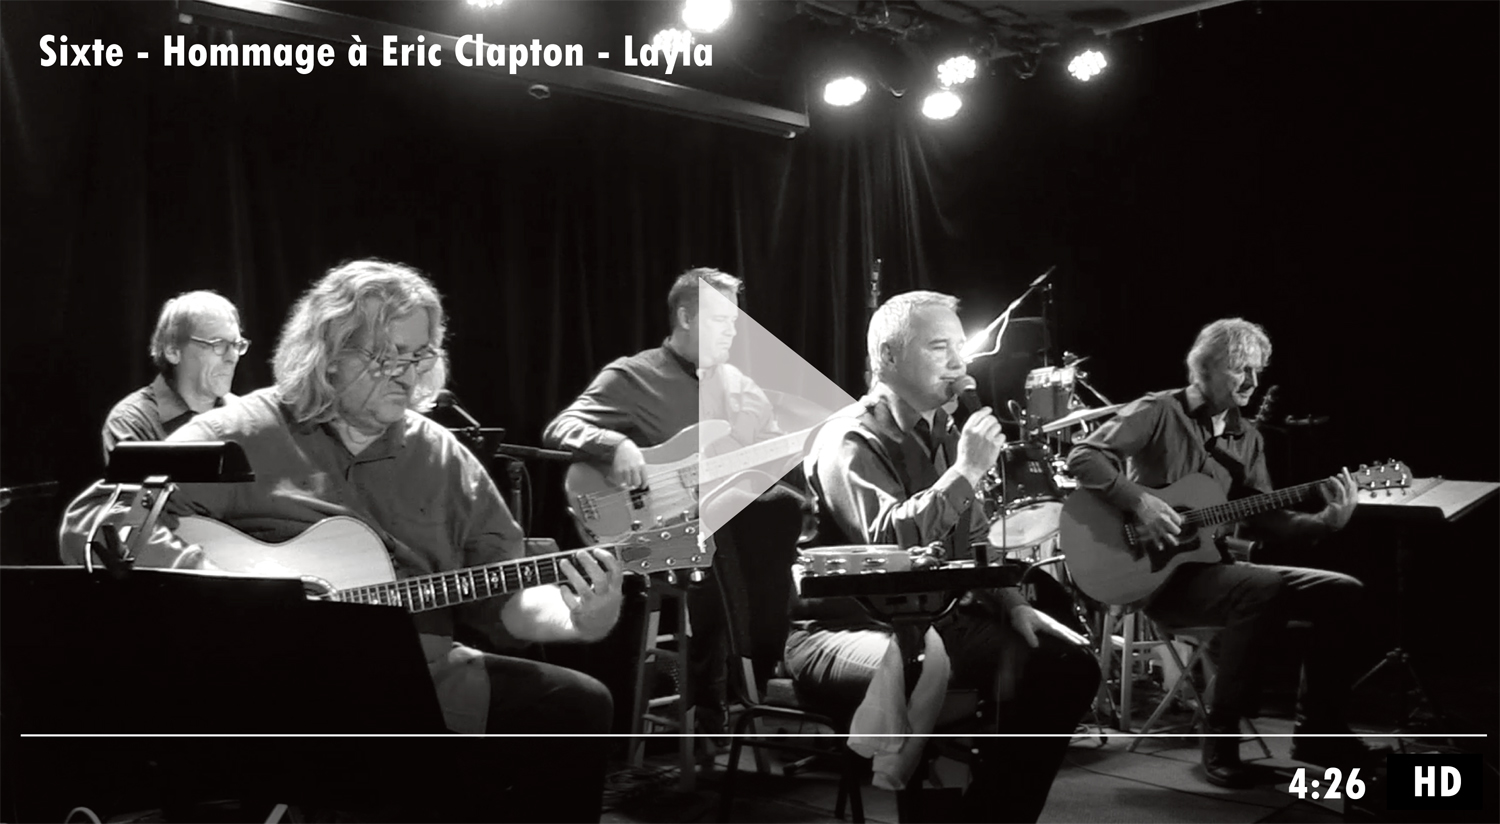 sixte-hommage-a-eric-clapton-lay-1